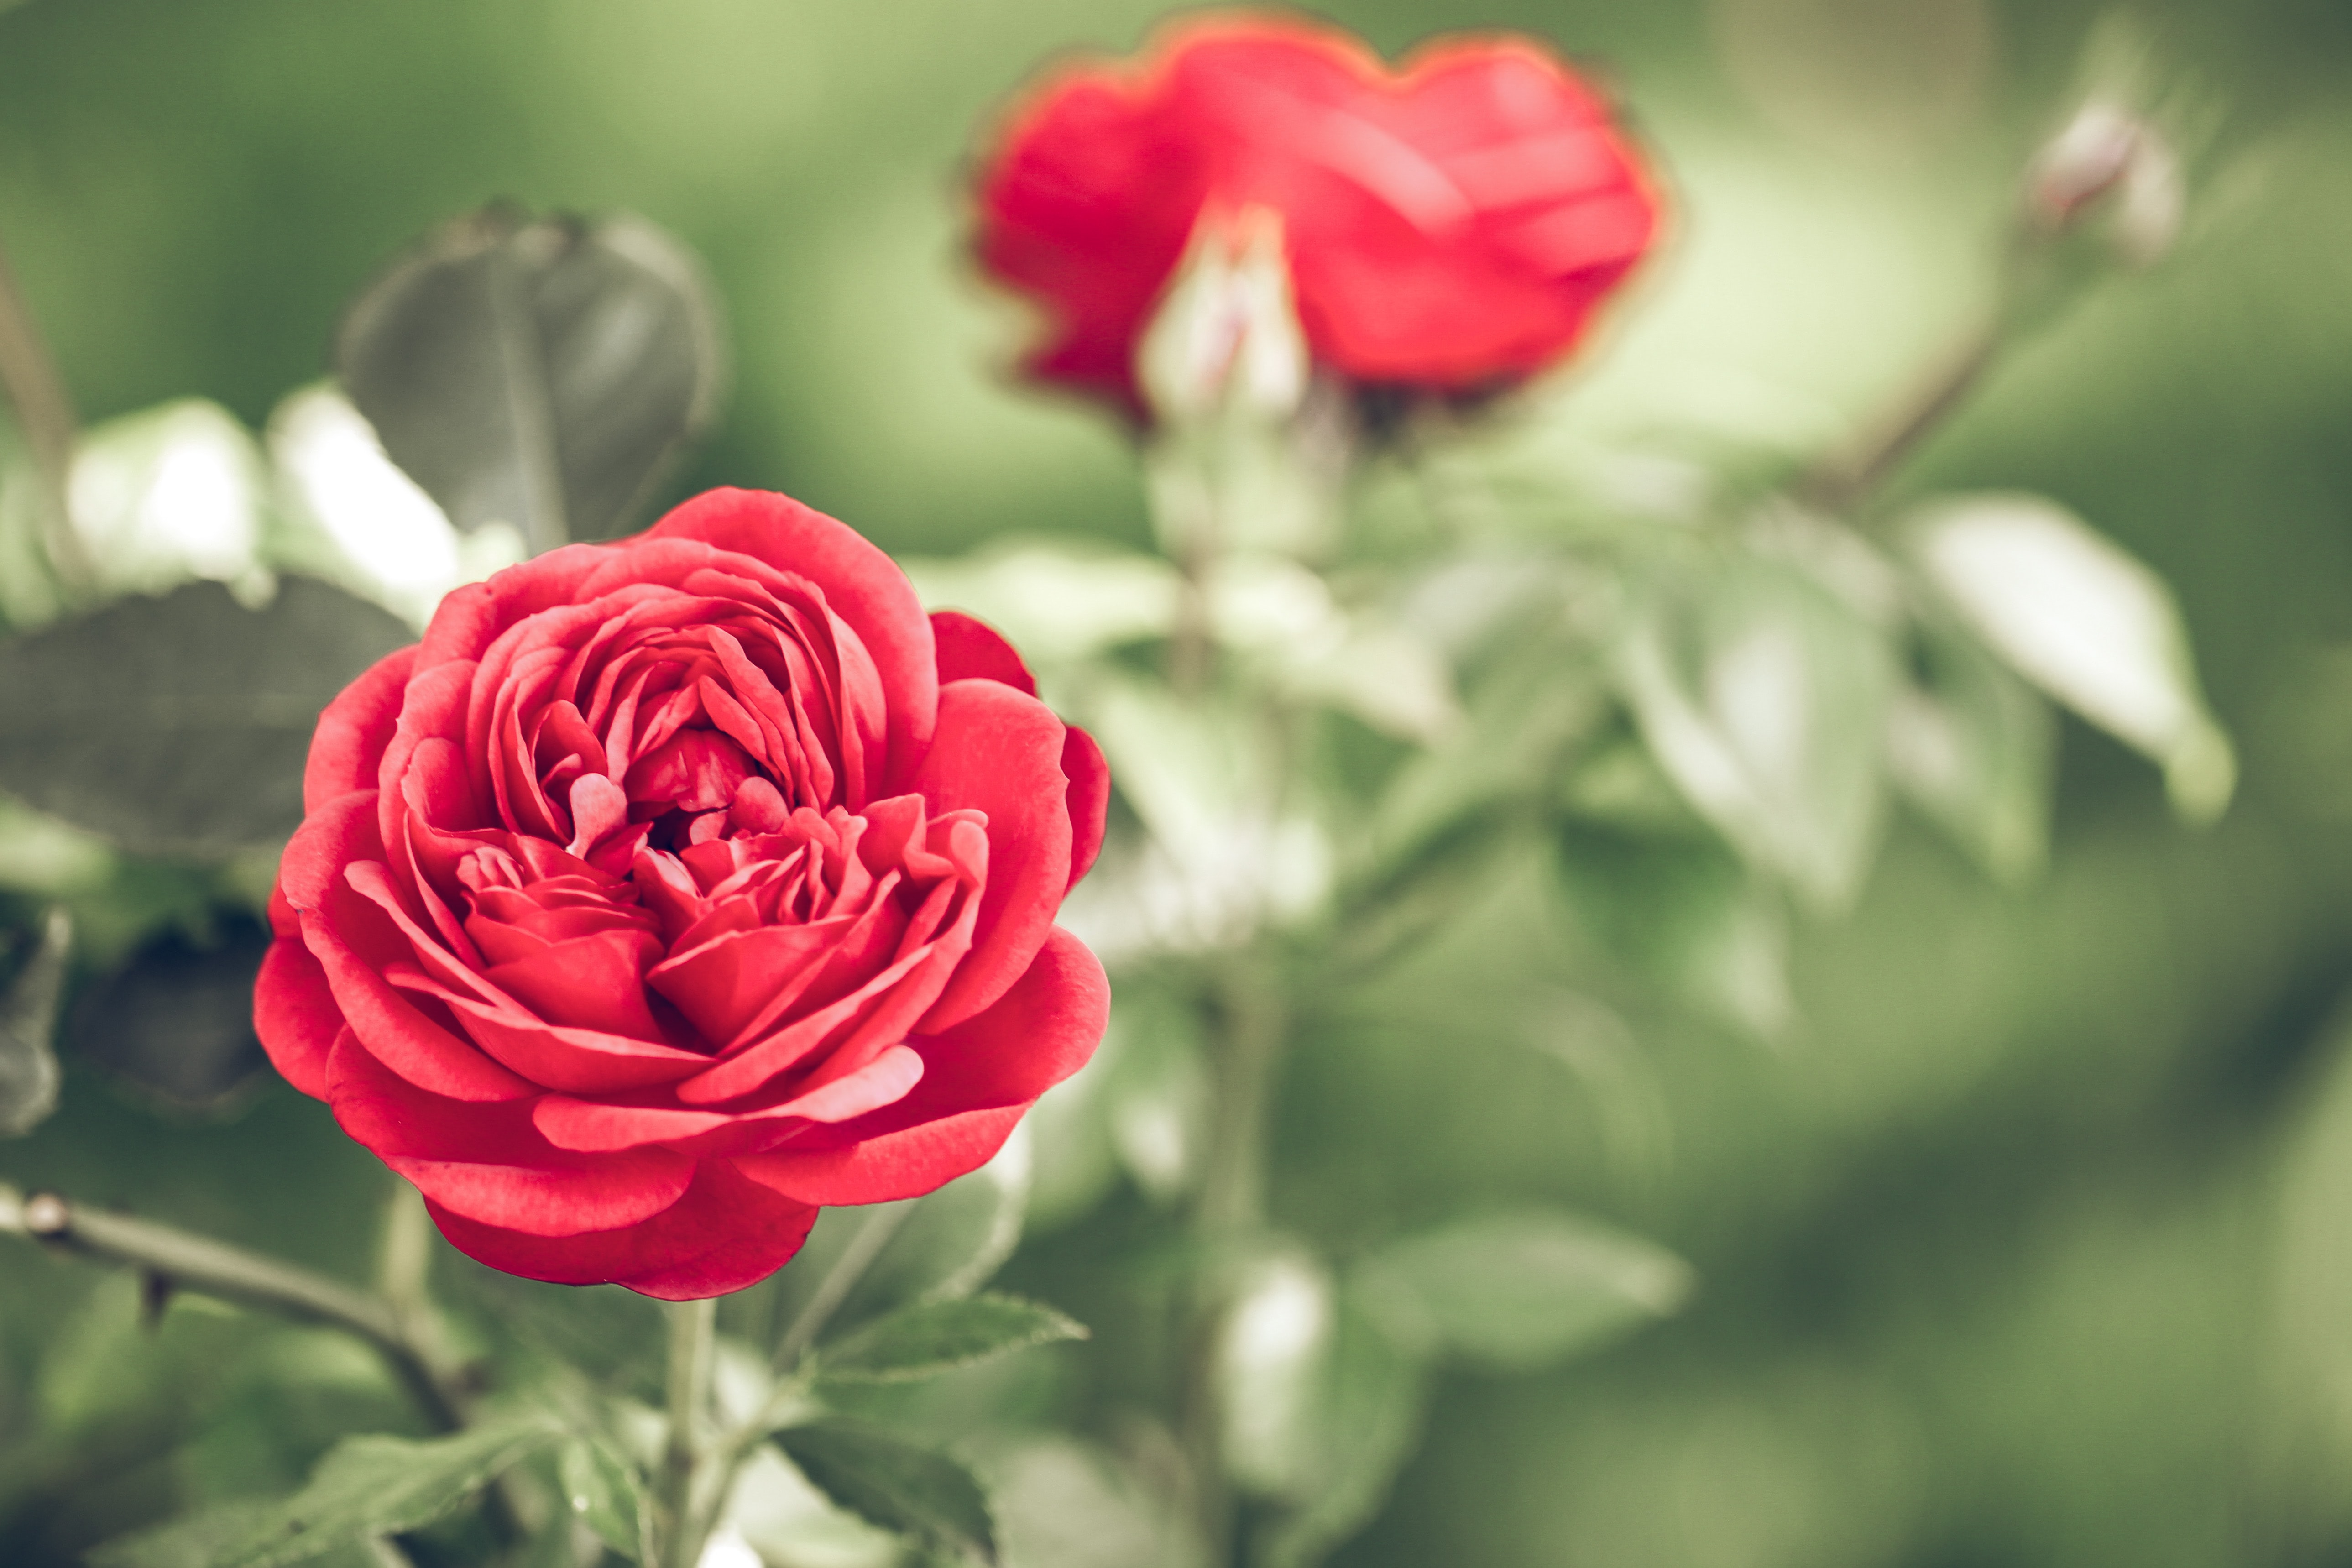 A close-up of bright red roses on a bush